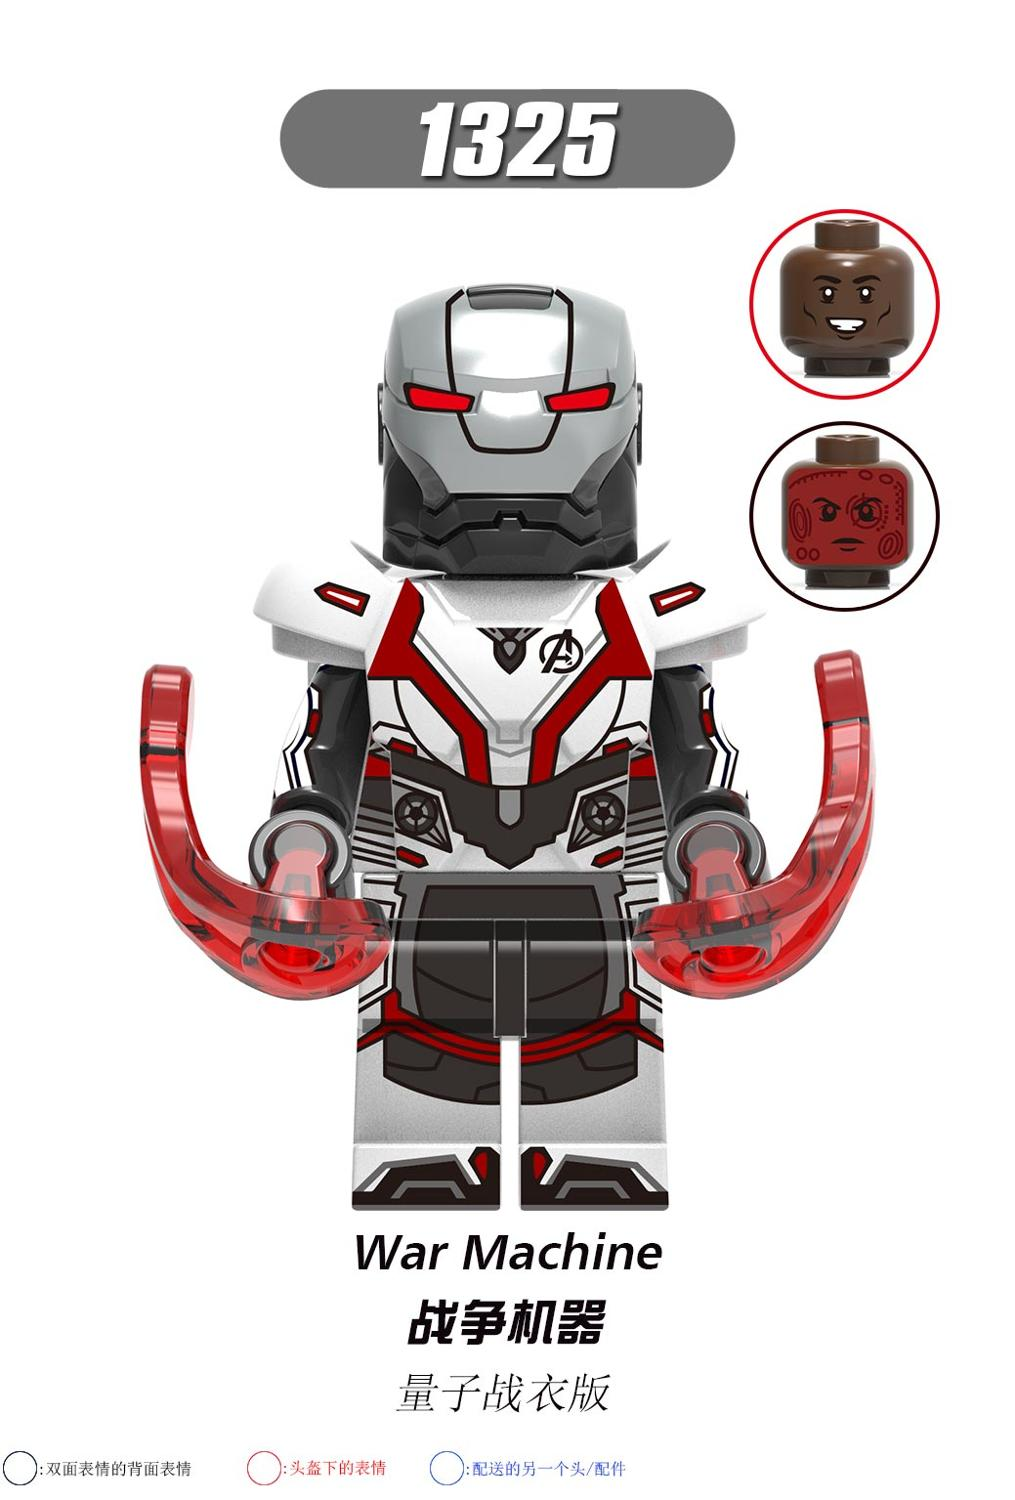 Image 5 - MARVEL  Avengers 4  Iron  Man MK85  Ant Man  Hawkeye War Machine Building Blocks Toys for Children X0265-in Interconnecting Blocks from Toys & Hobbies